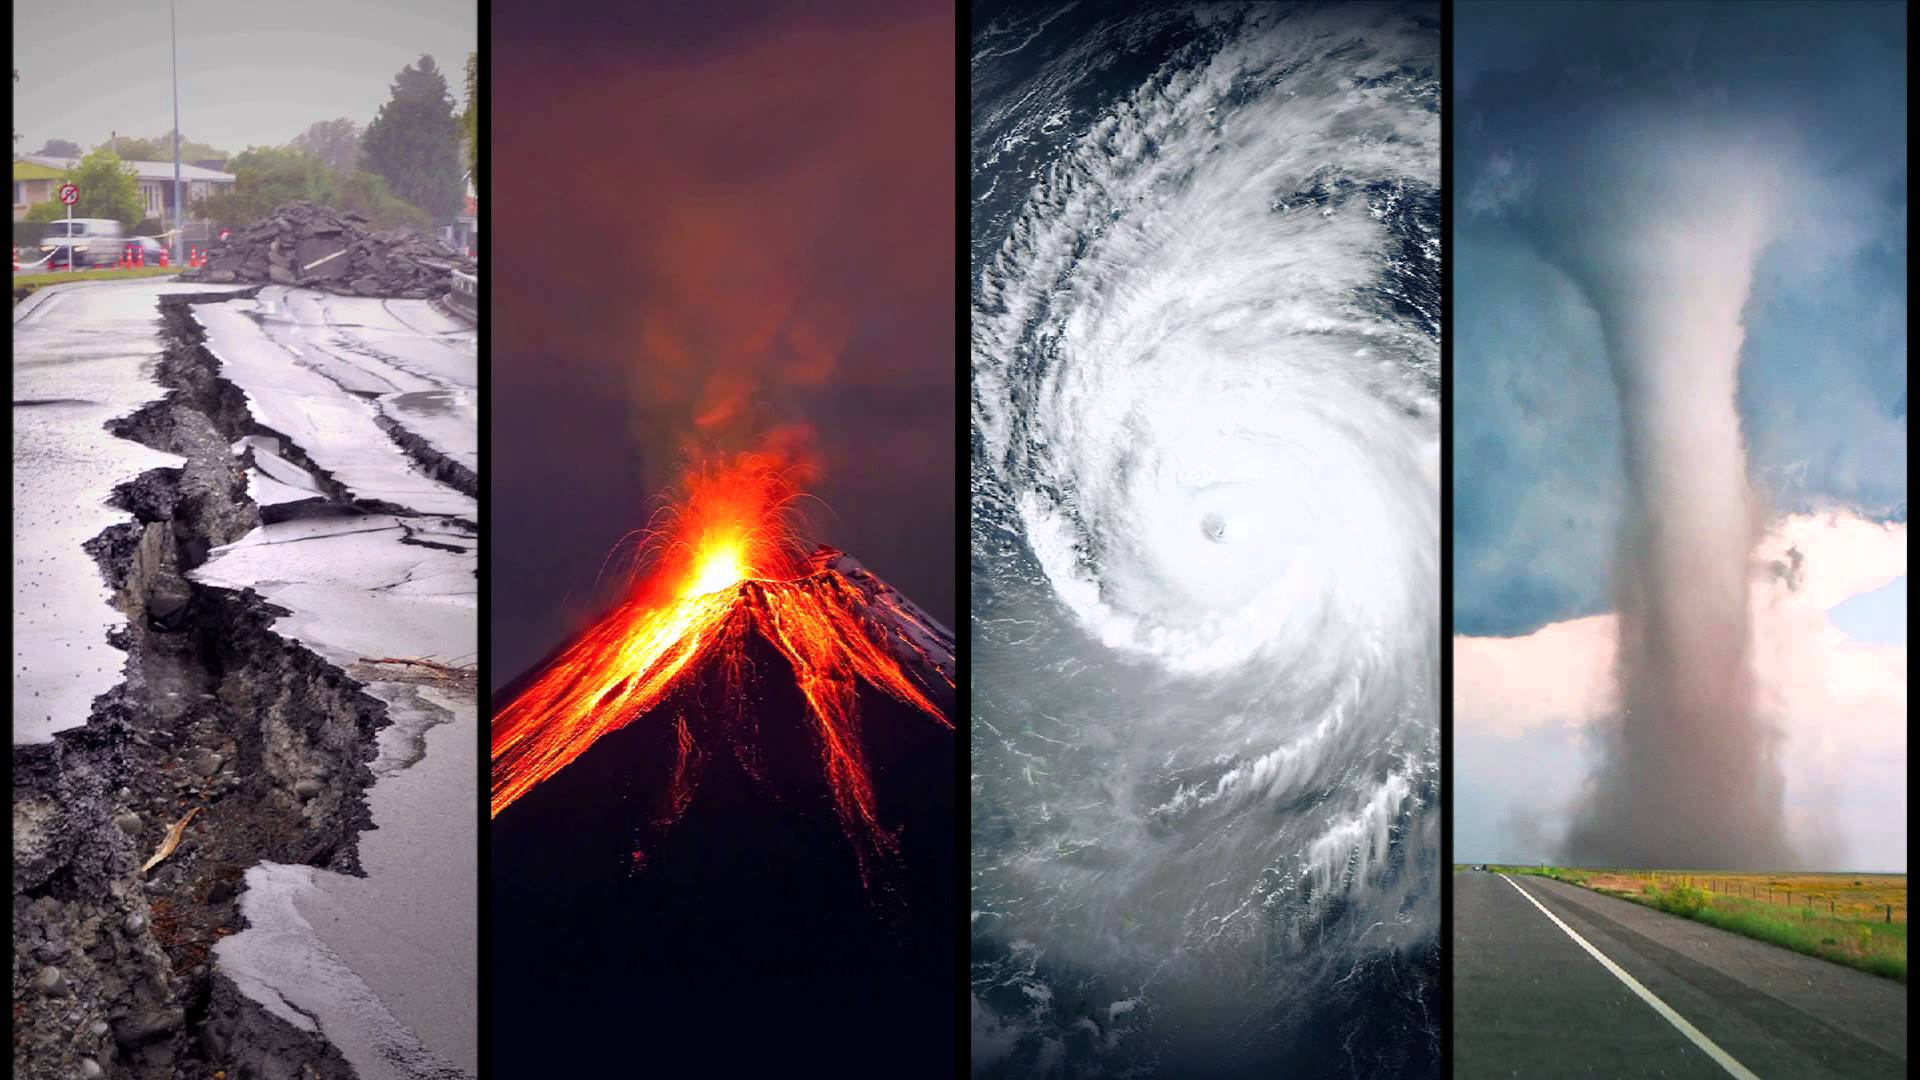 the natural disasters Browse our list of natural disasters with humanitarian impact from 1981 until today skip to main content labs blog mobile about us help login.